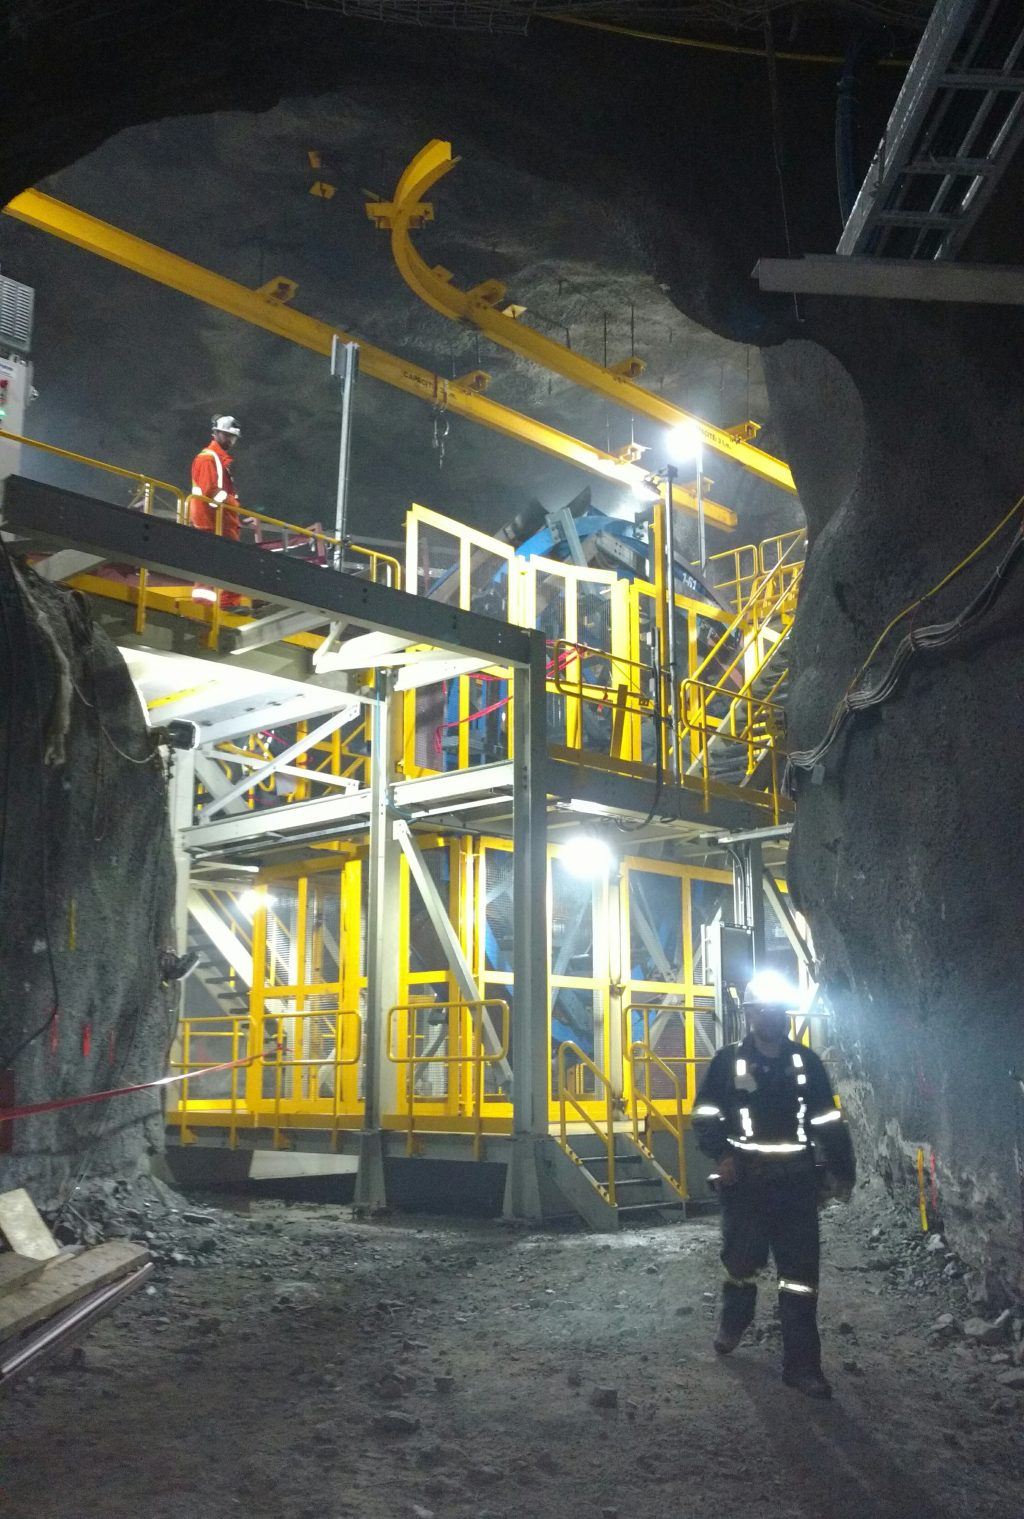 Workers at a section of the Rail-Veyor system at Agnico Eagle Mines' Goldex underground gold mine near Val-d'Or, Quebec. Photo by John Cumming.